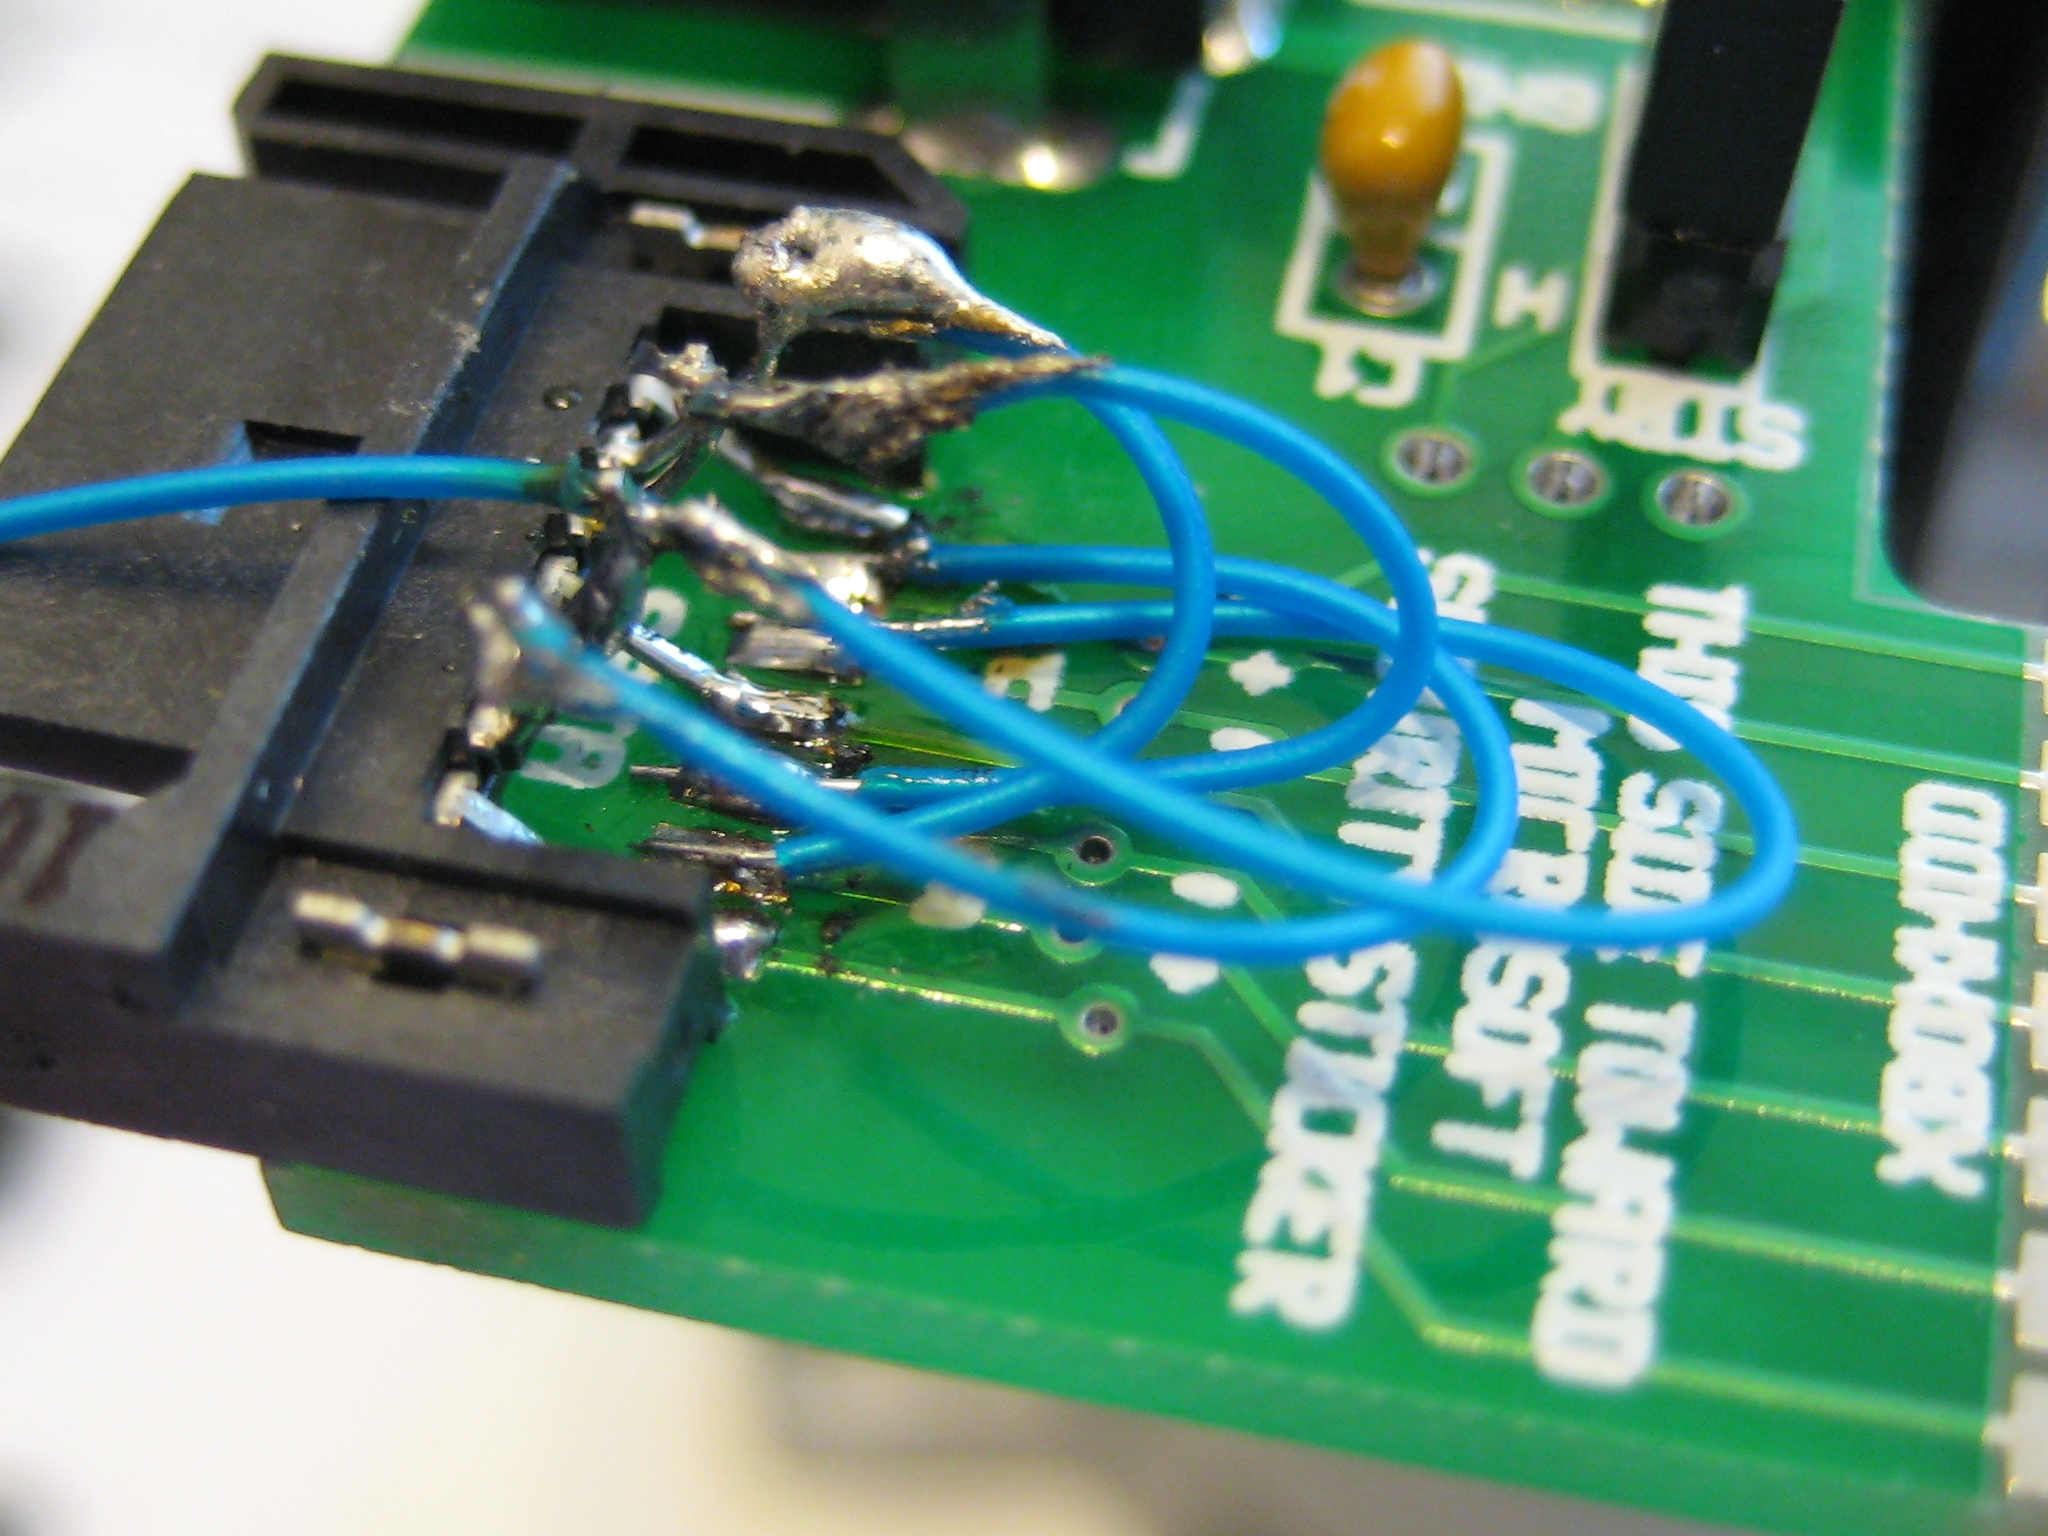 Photo of rewired SATA connector from the side ...